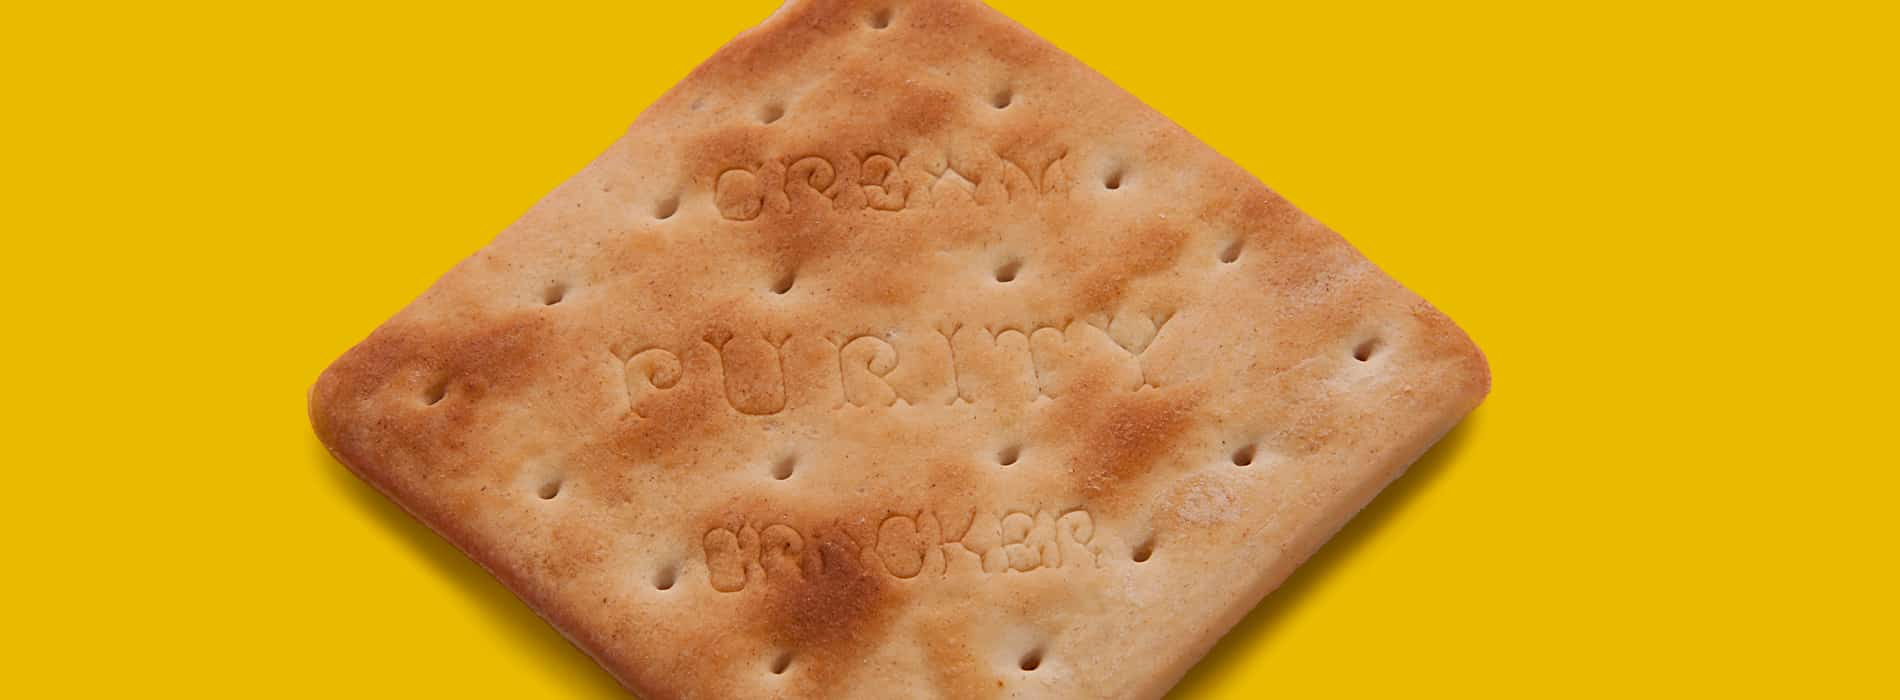 Products – Lunch and Crackers End